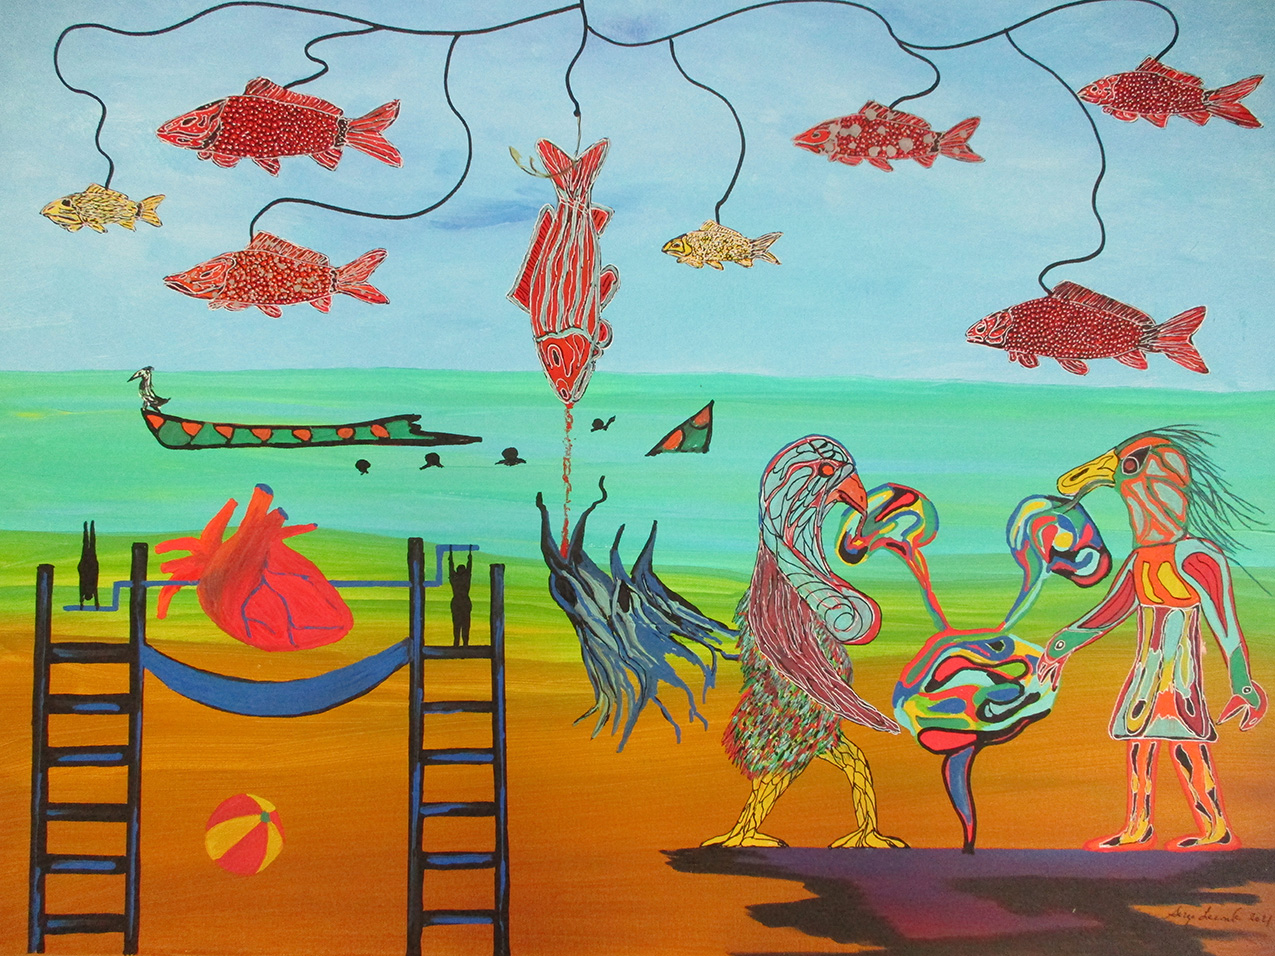 surreal drawing of flying fish and mythical creatures on a beach. a human heart is turned on a spit by tiny women.